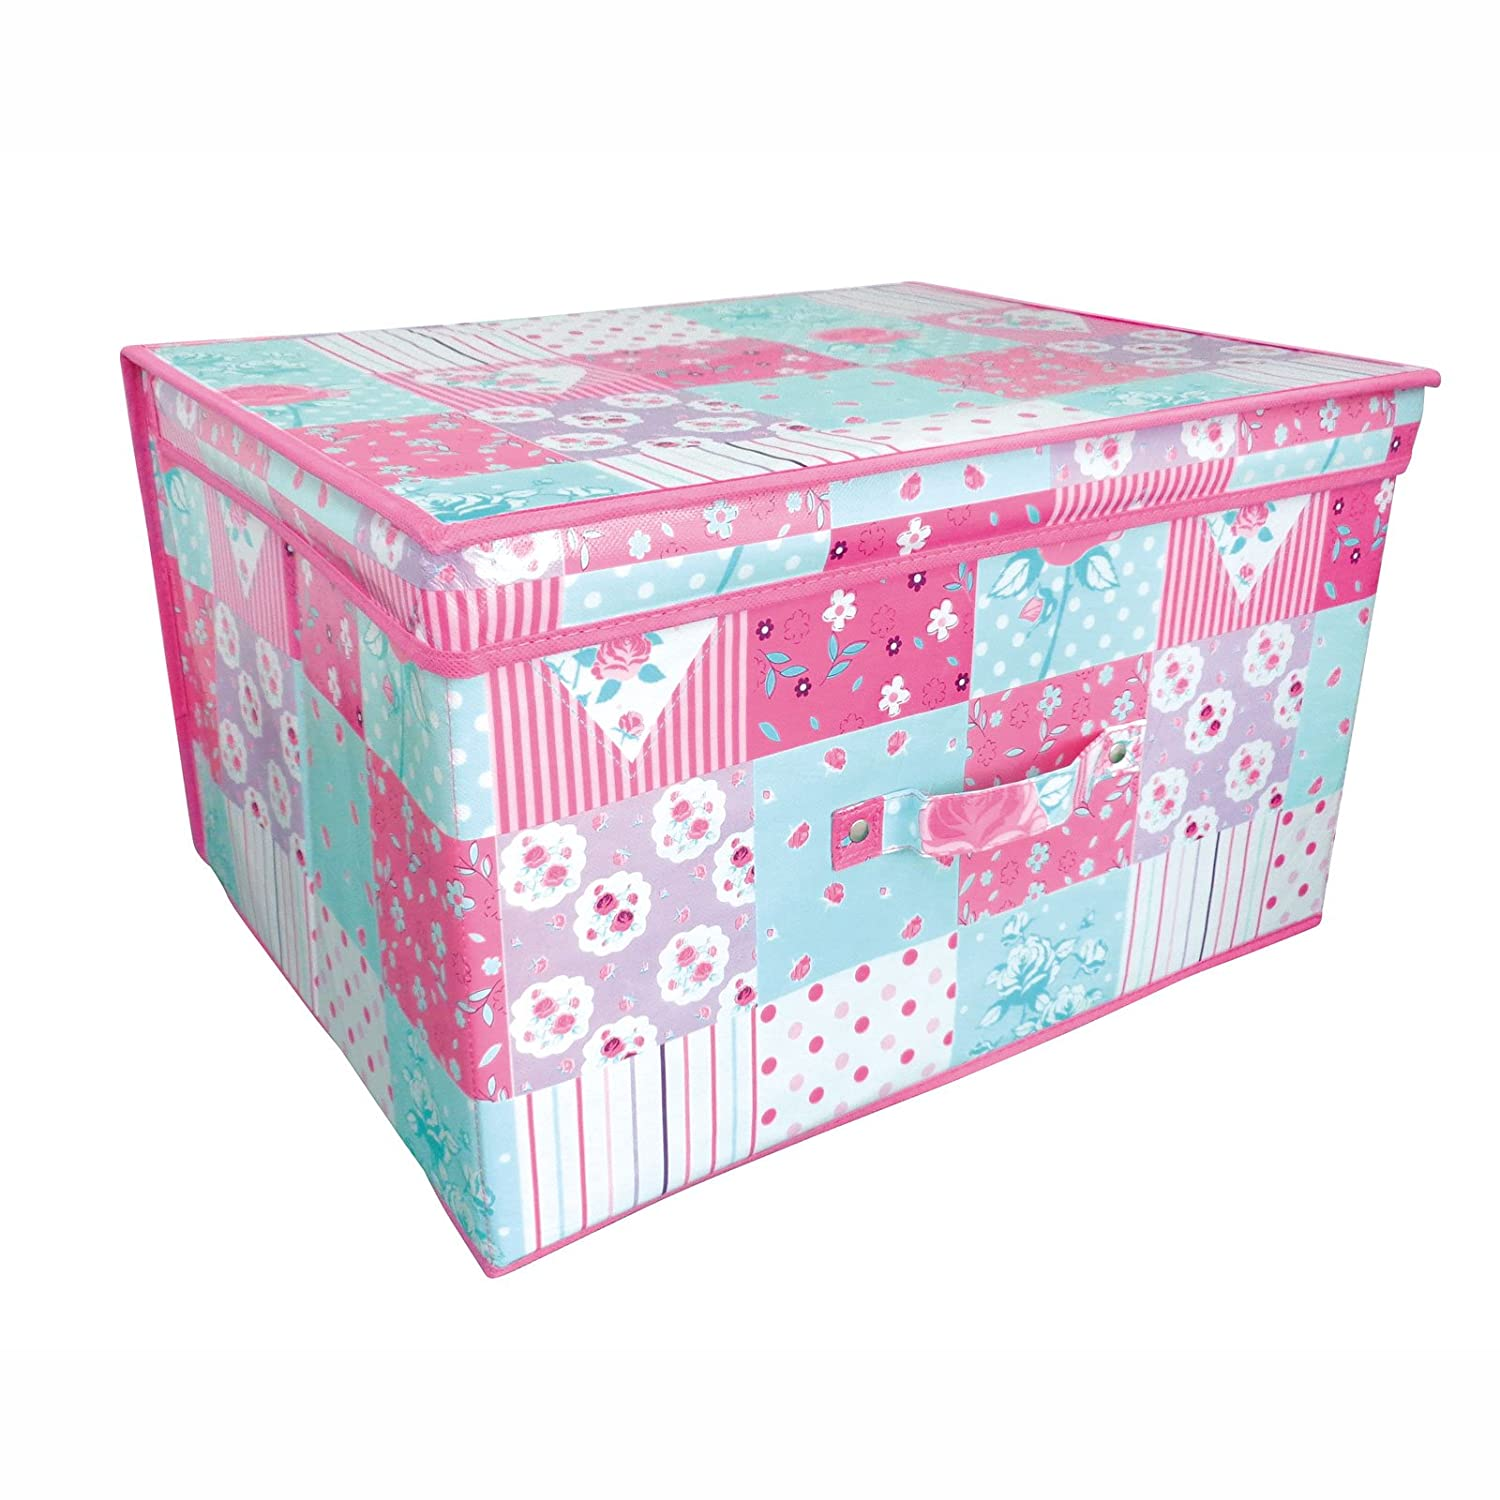 Folding Pink and Teal Patchwork Kids Room Tidy Toy Storage Box